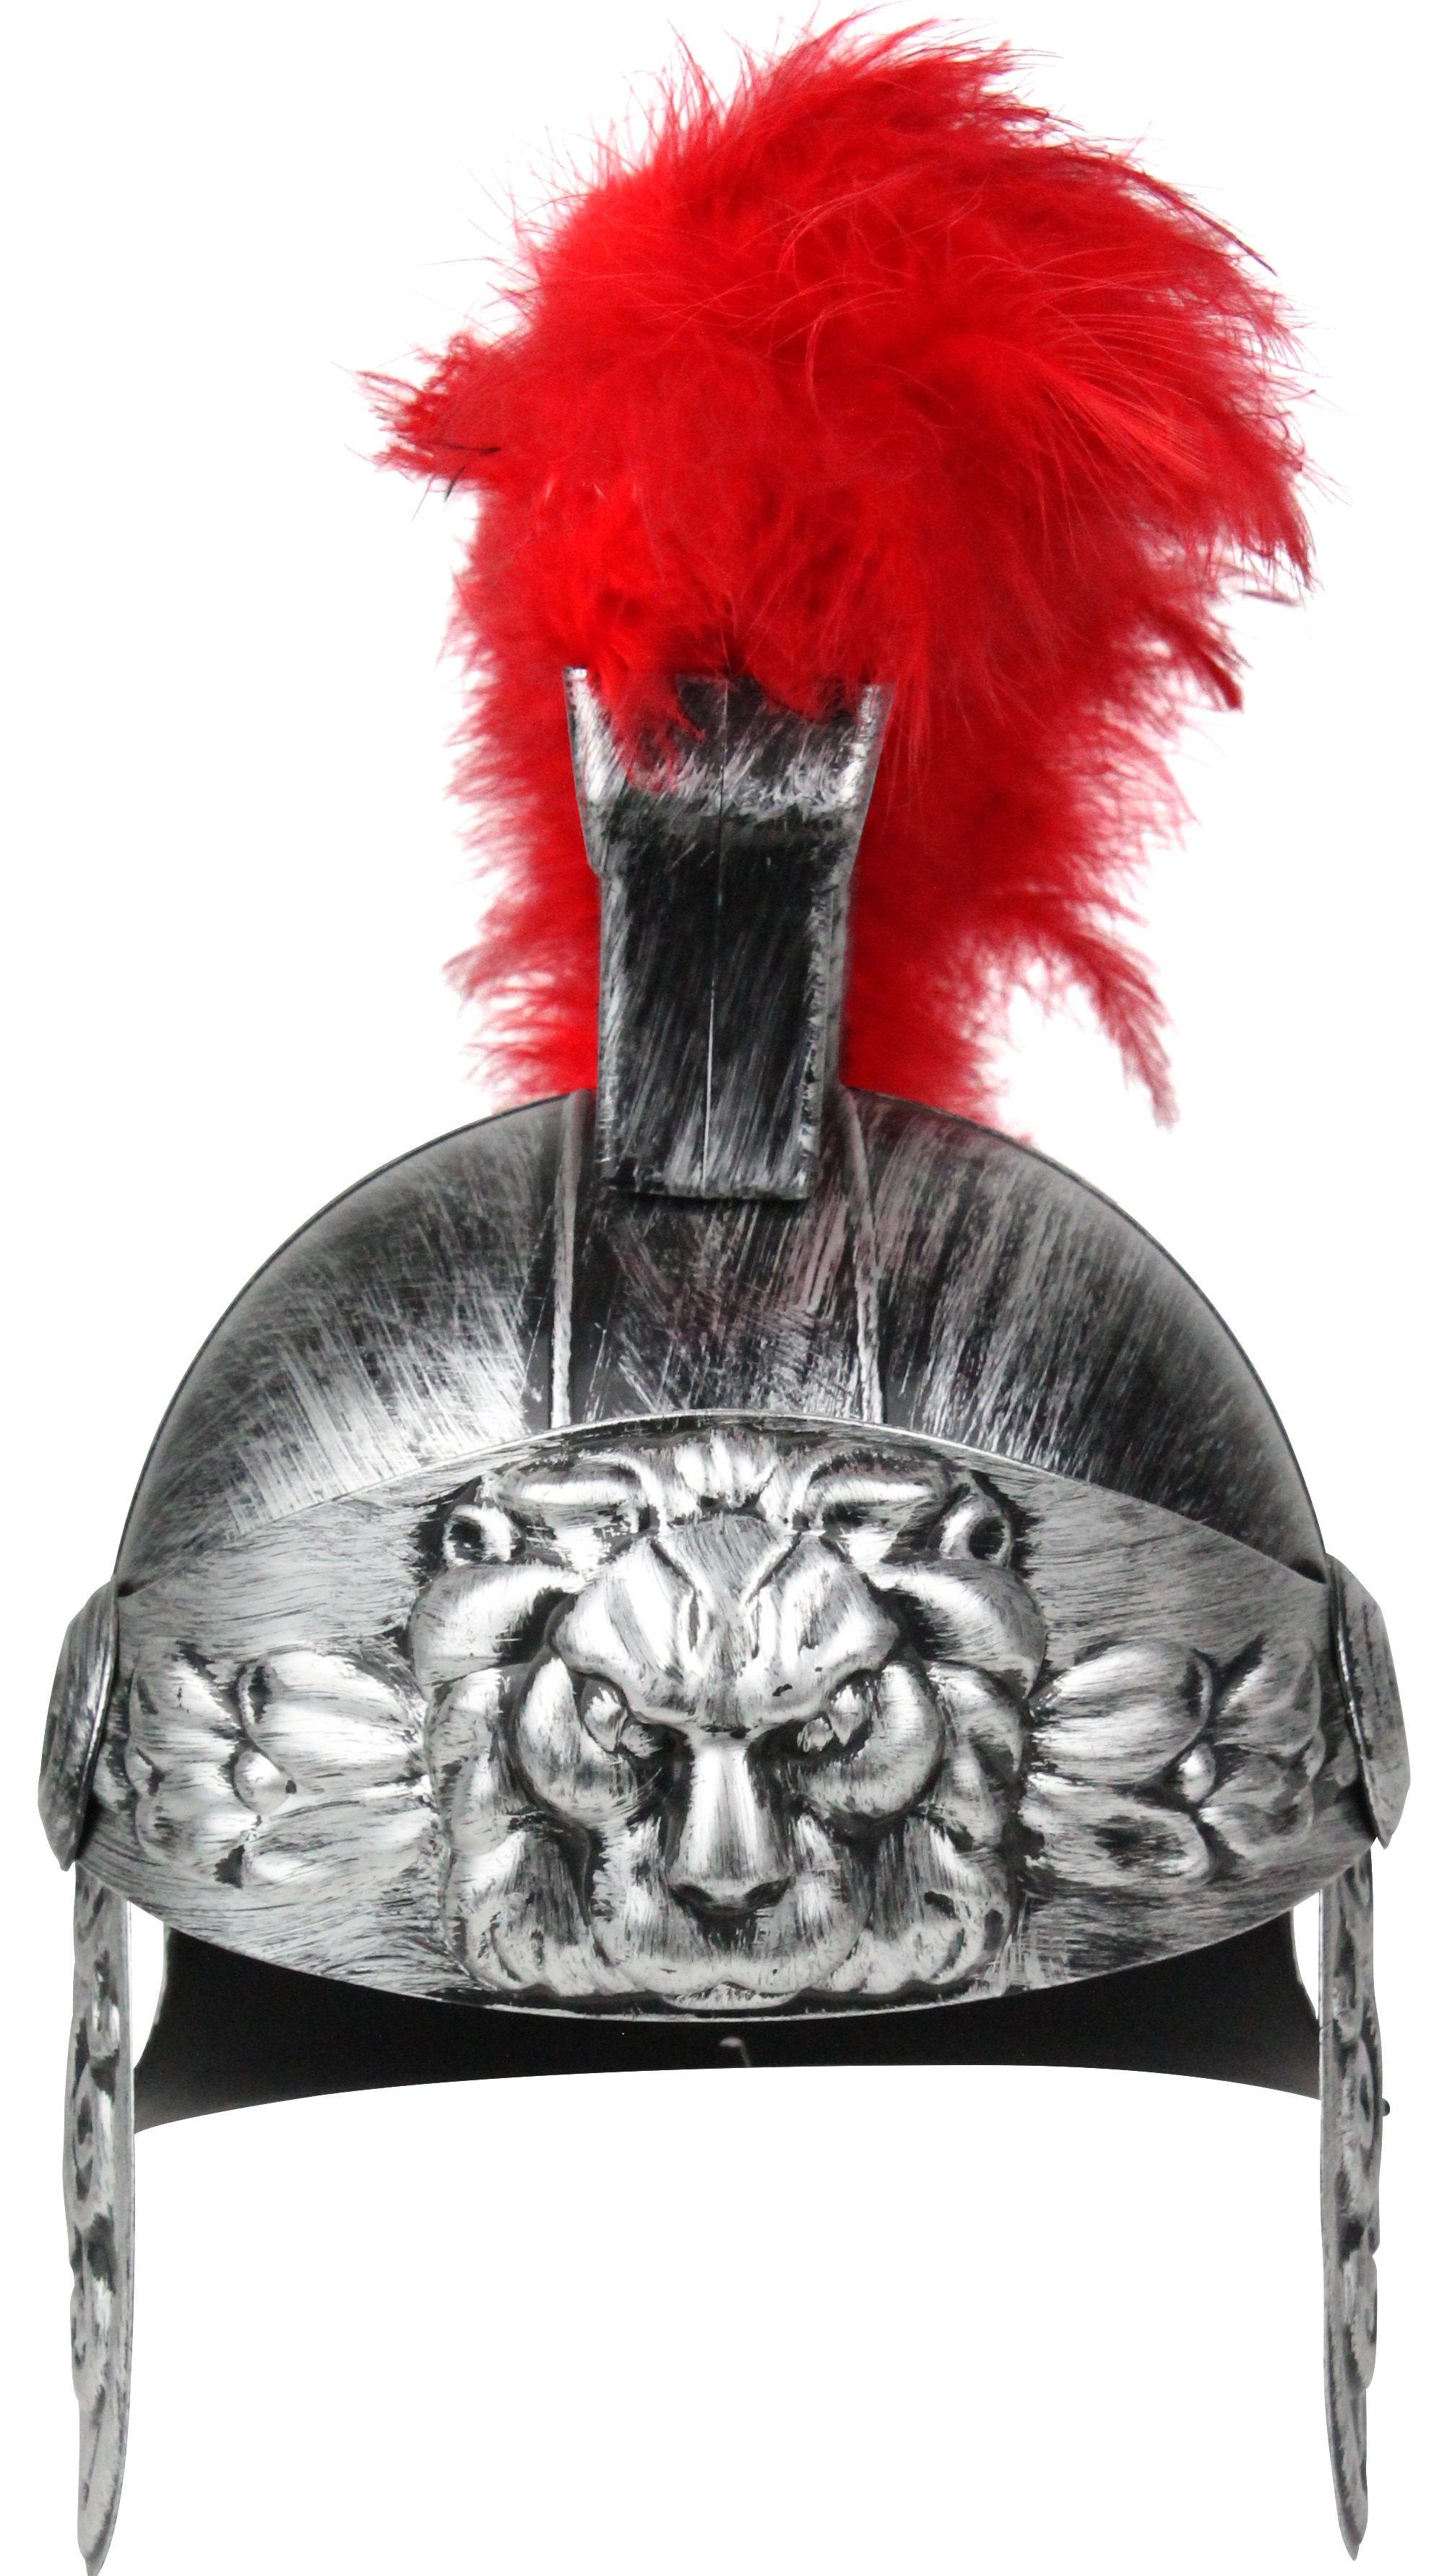 thumbnail 7 - Adult Gold Roman Helmet Spartan Greek With Red Feathers Armor Gladiator Costume